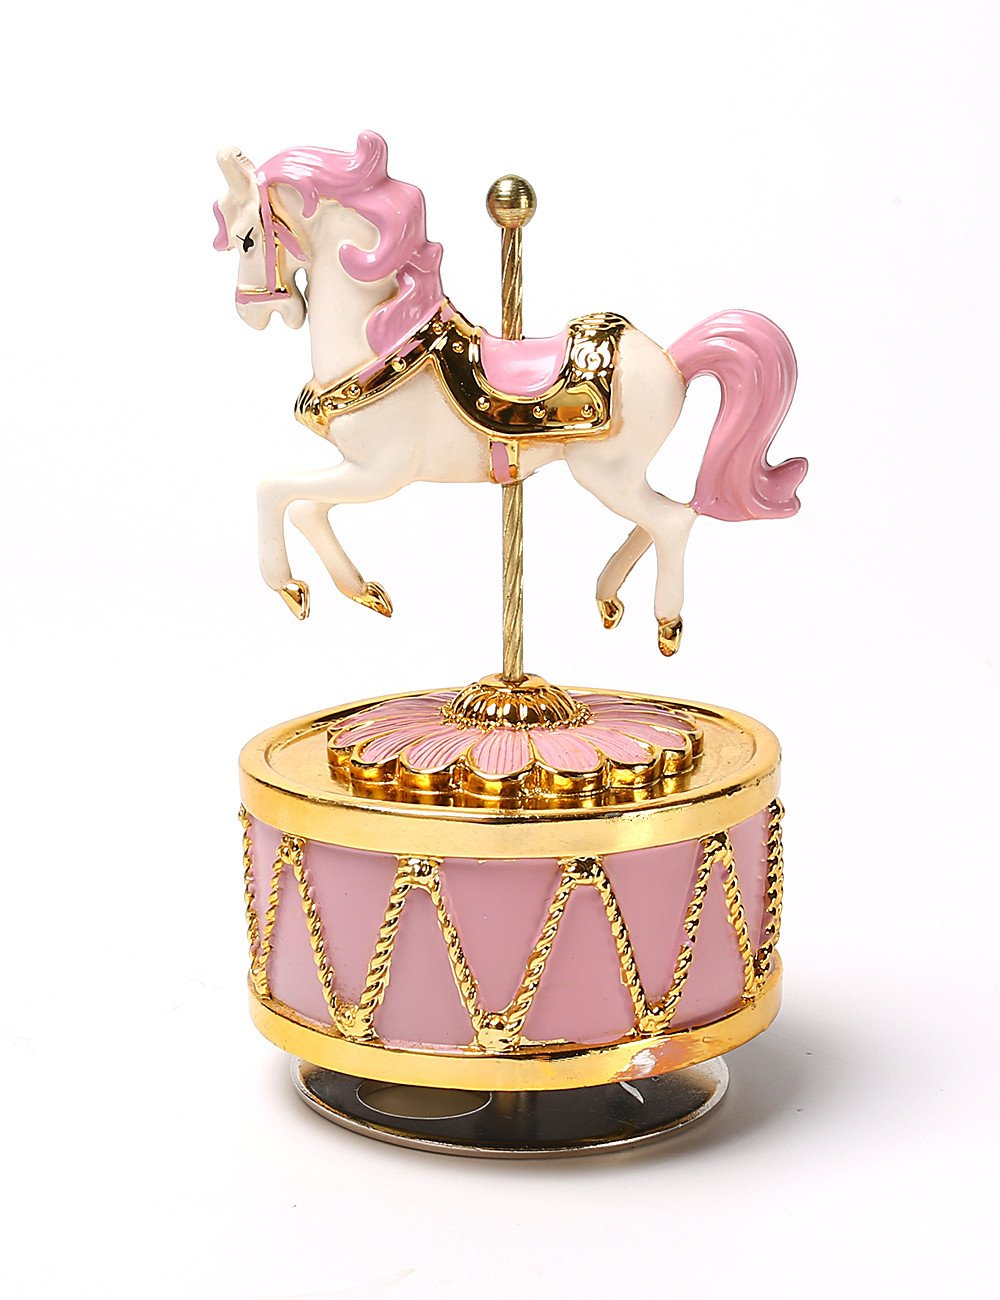 HoneyGifts Laxury Carousel Music Box, Happy Pony Design, for Kids (Pink & Gold)